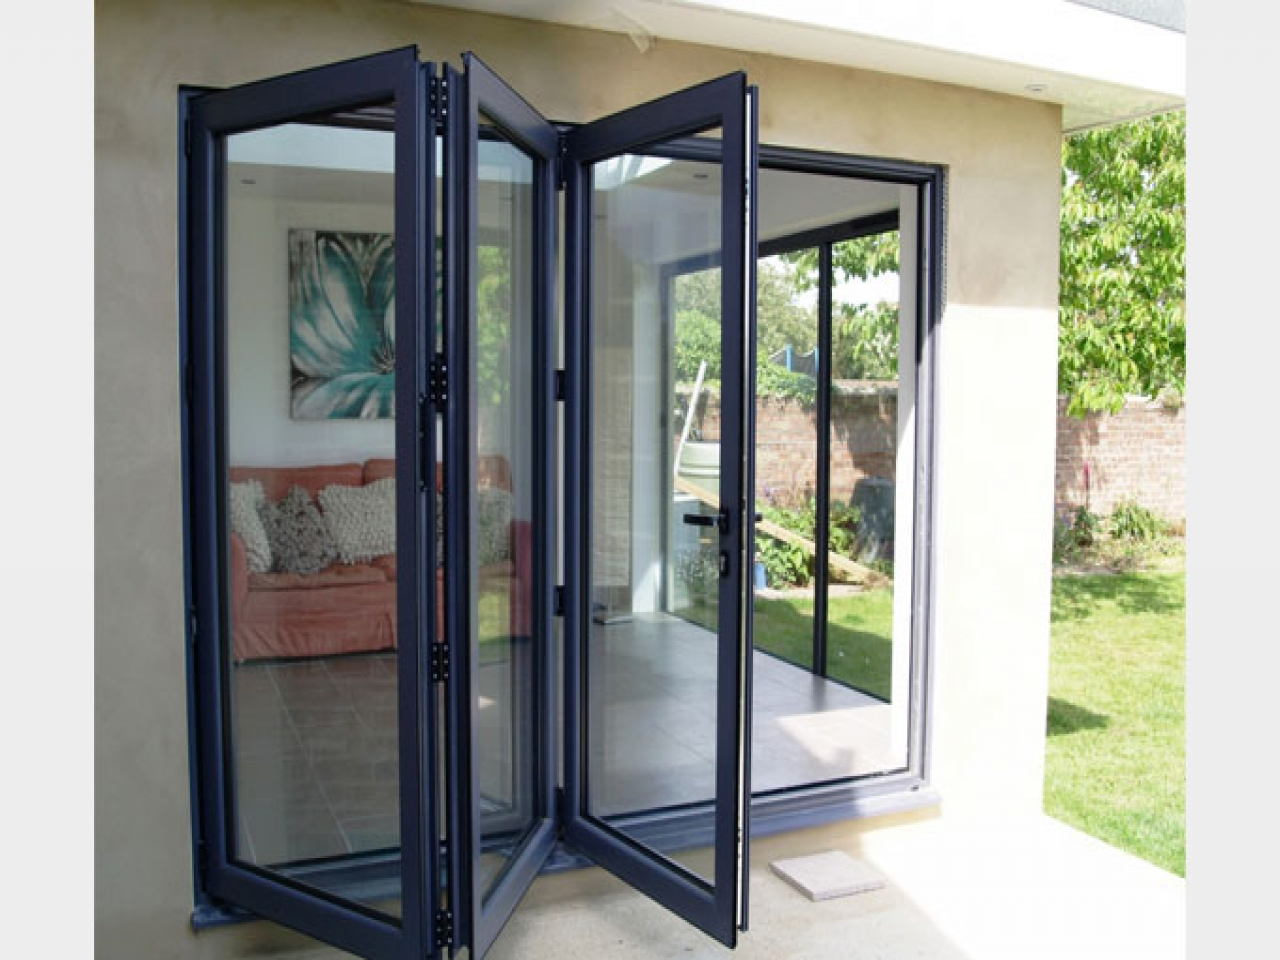 Residential windows doors south coast windows doors for Exterior door with sliding window